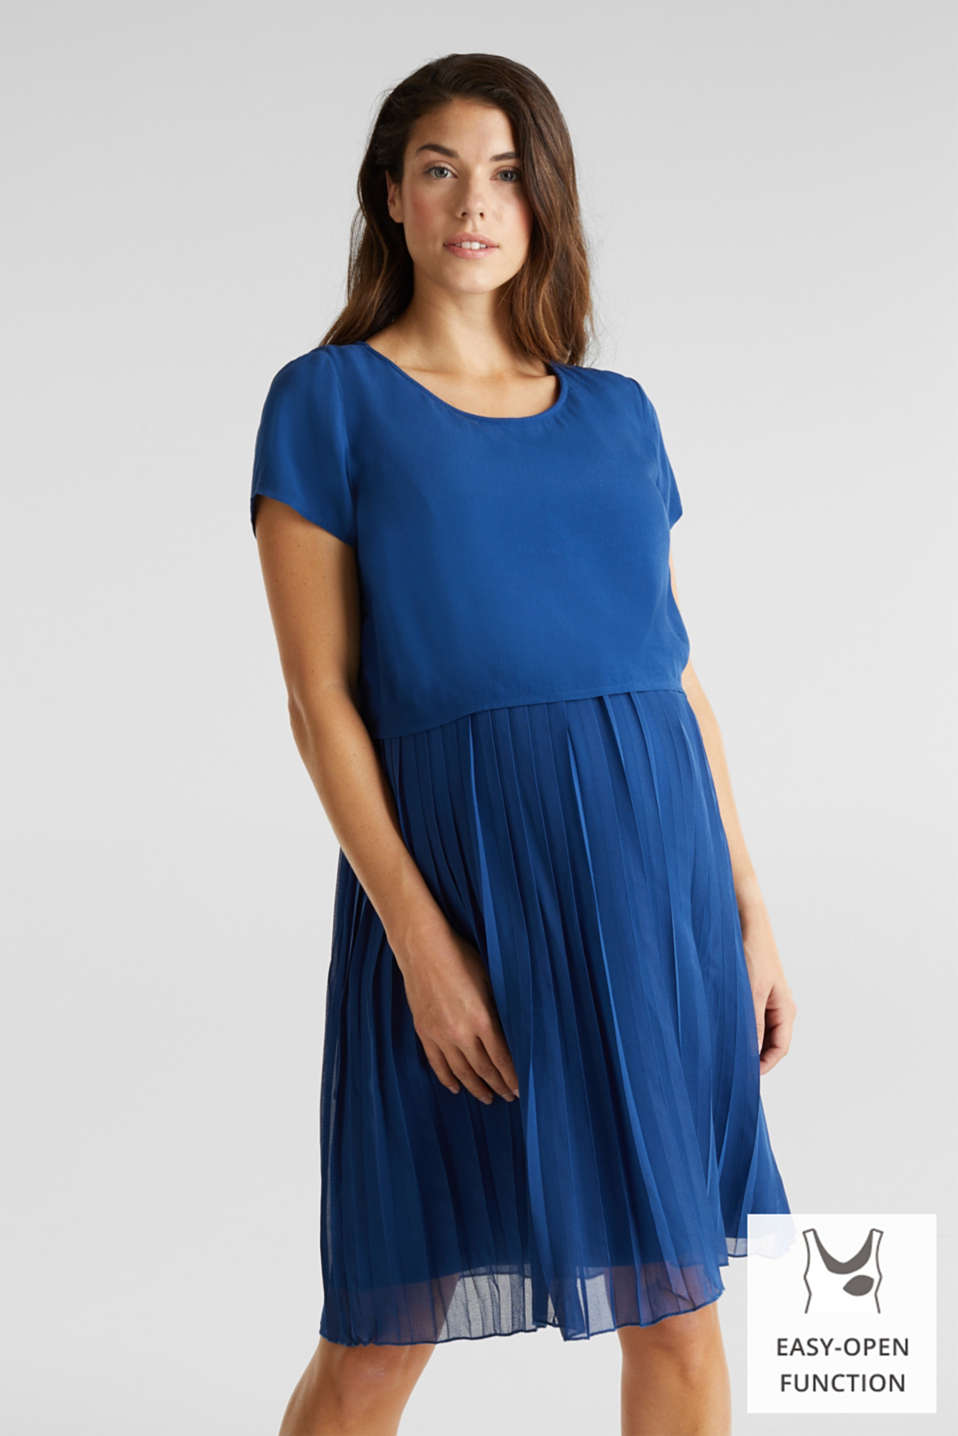 Pleated dress a nursing function, LCBRIGHT BLUE, detail image number 0